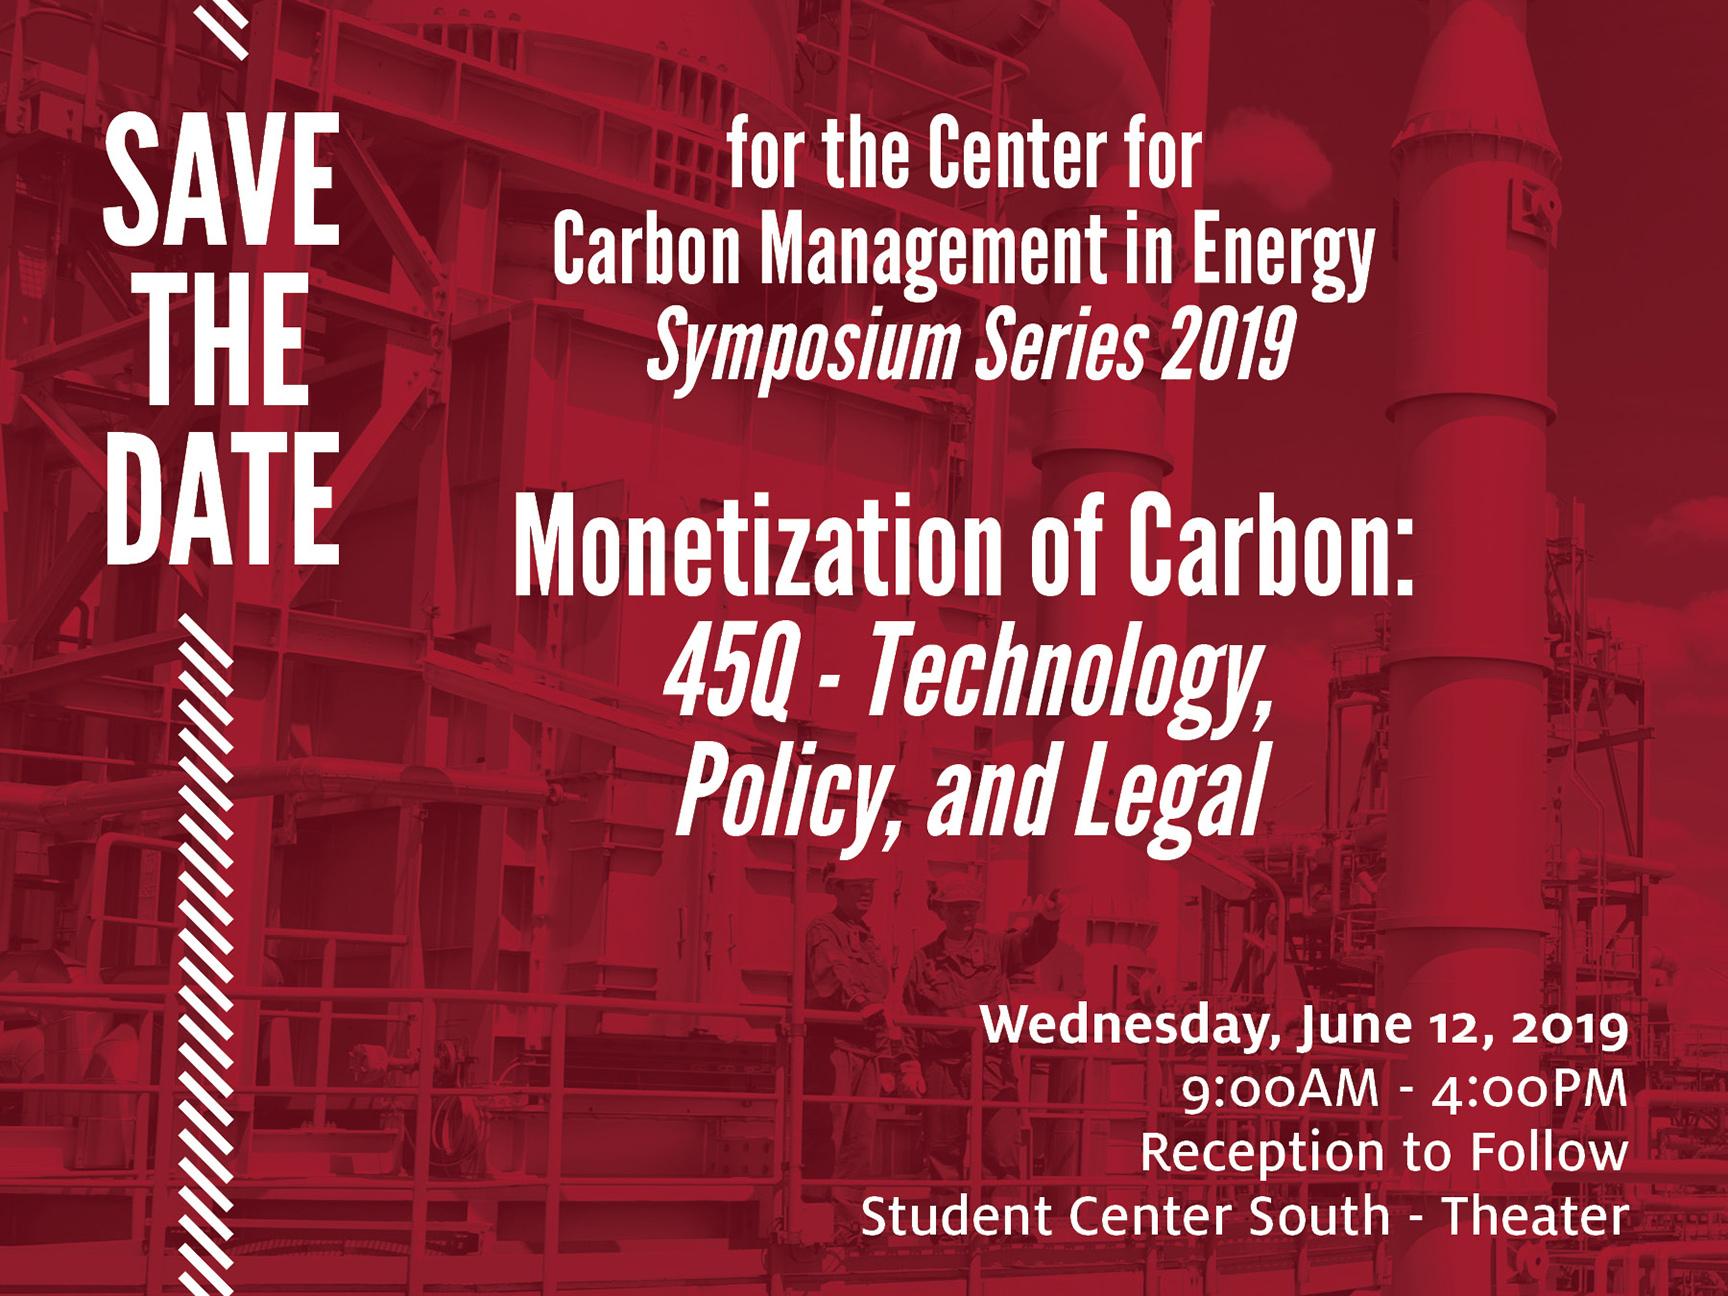 Monetization of Carbon: 45Q - Technology, Policy, and Legal Image